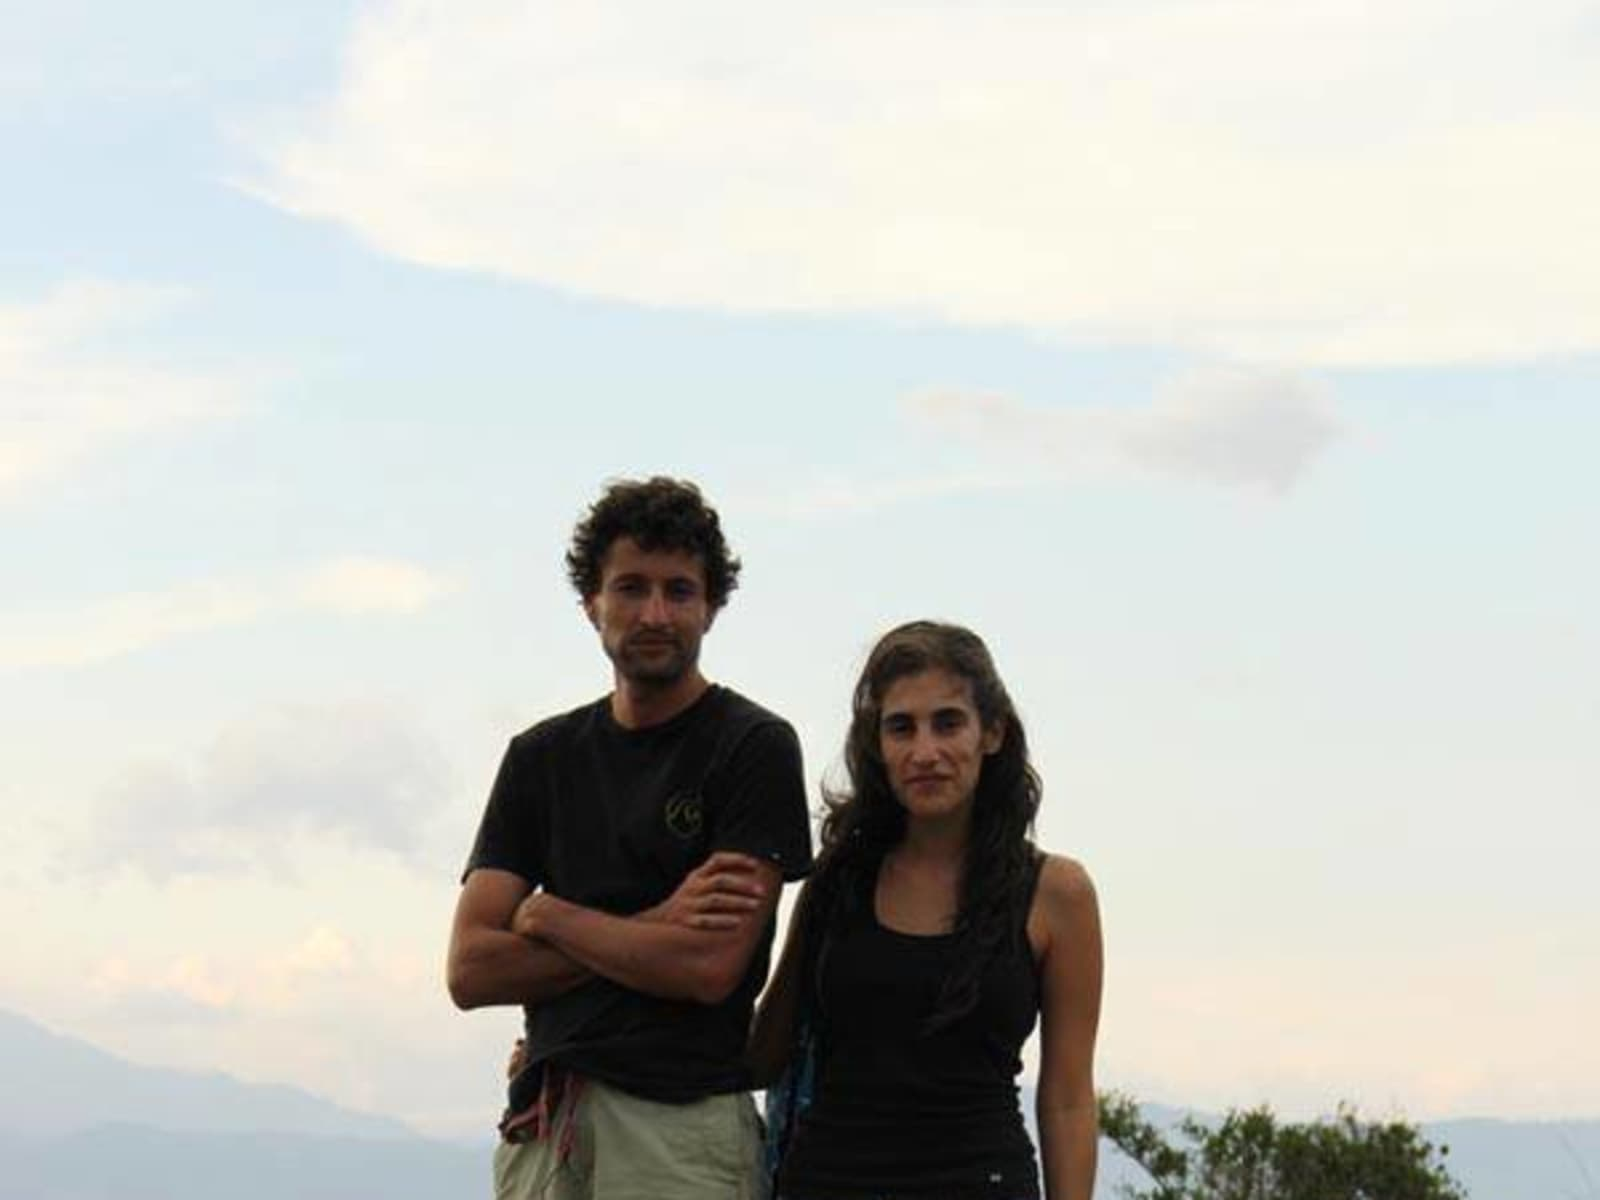 Laura & Mauricio from Manizales, Colombia